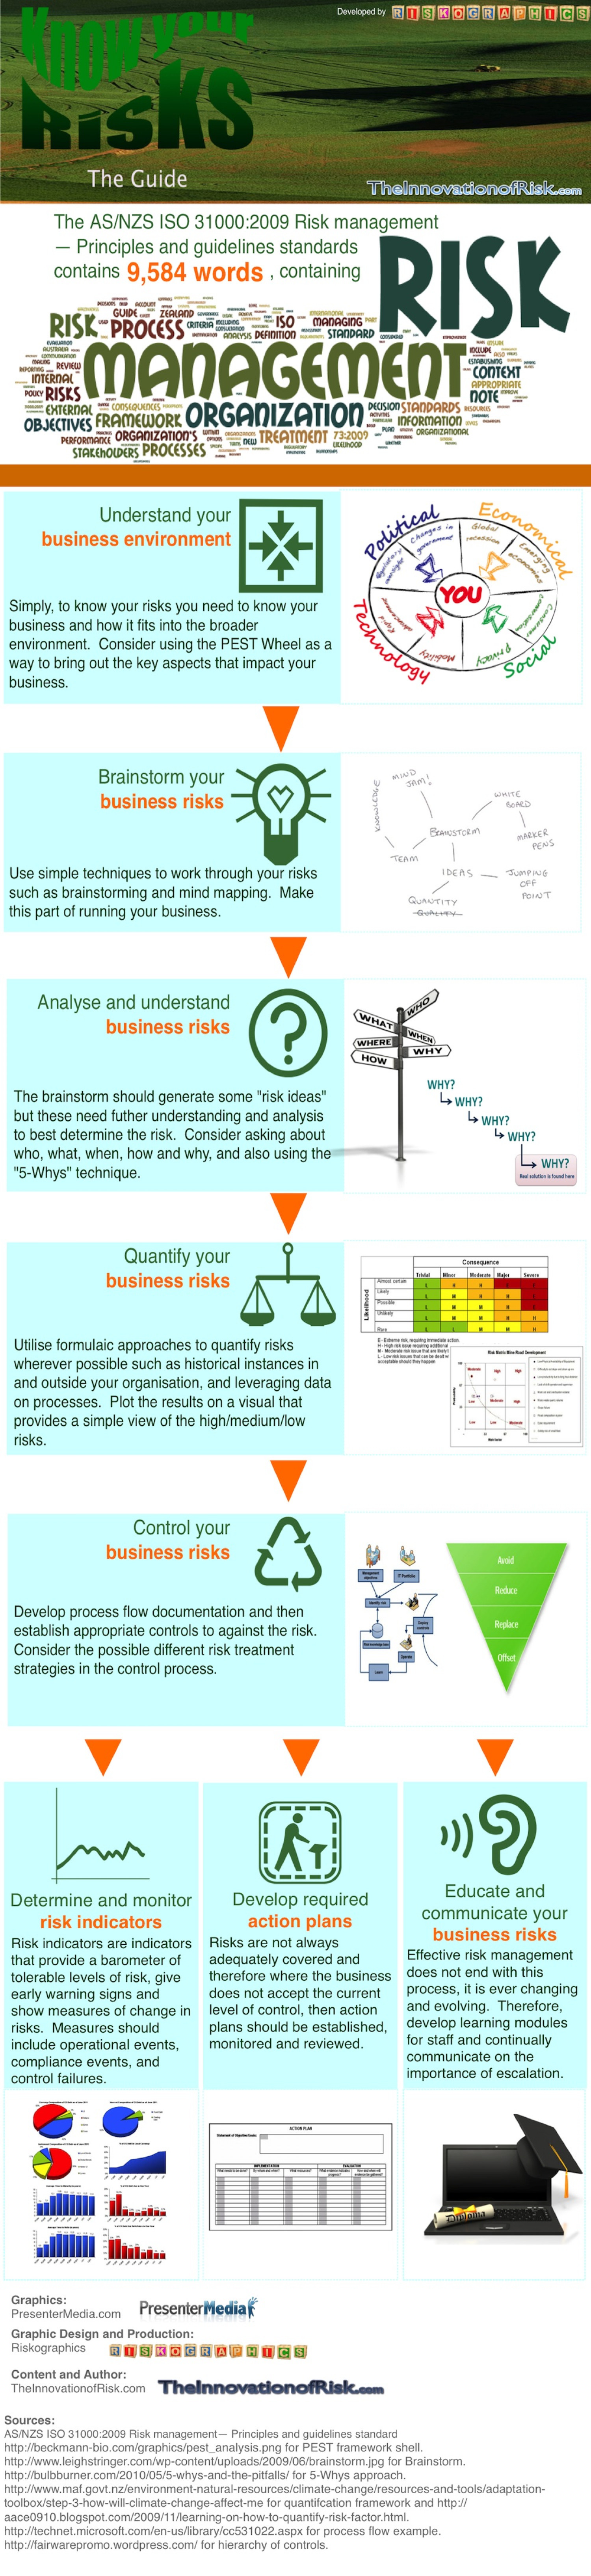 Know Your Risks Infographic